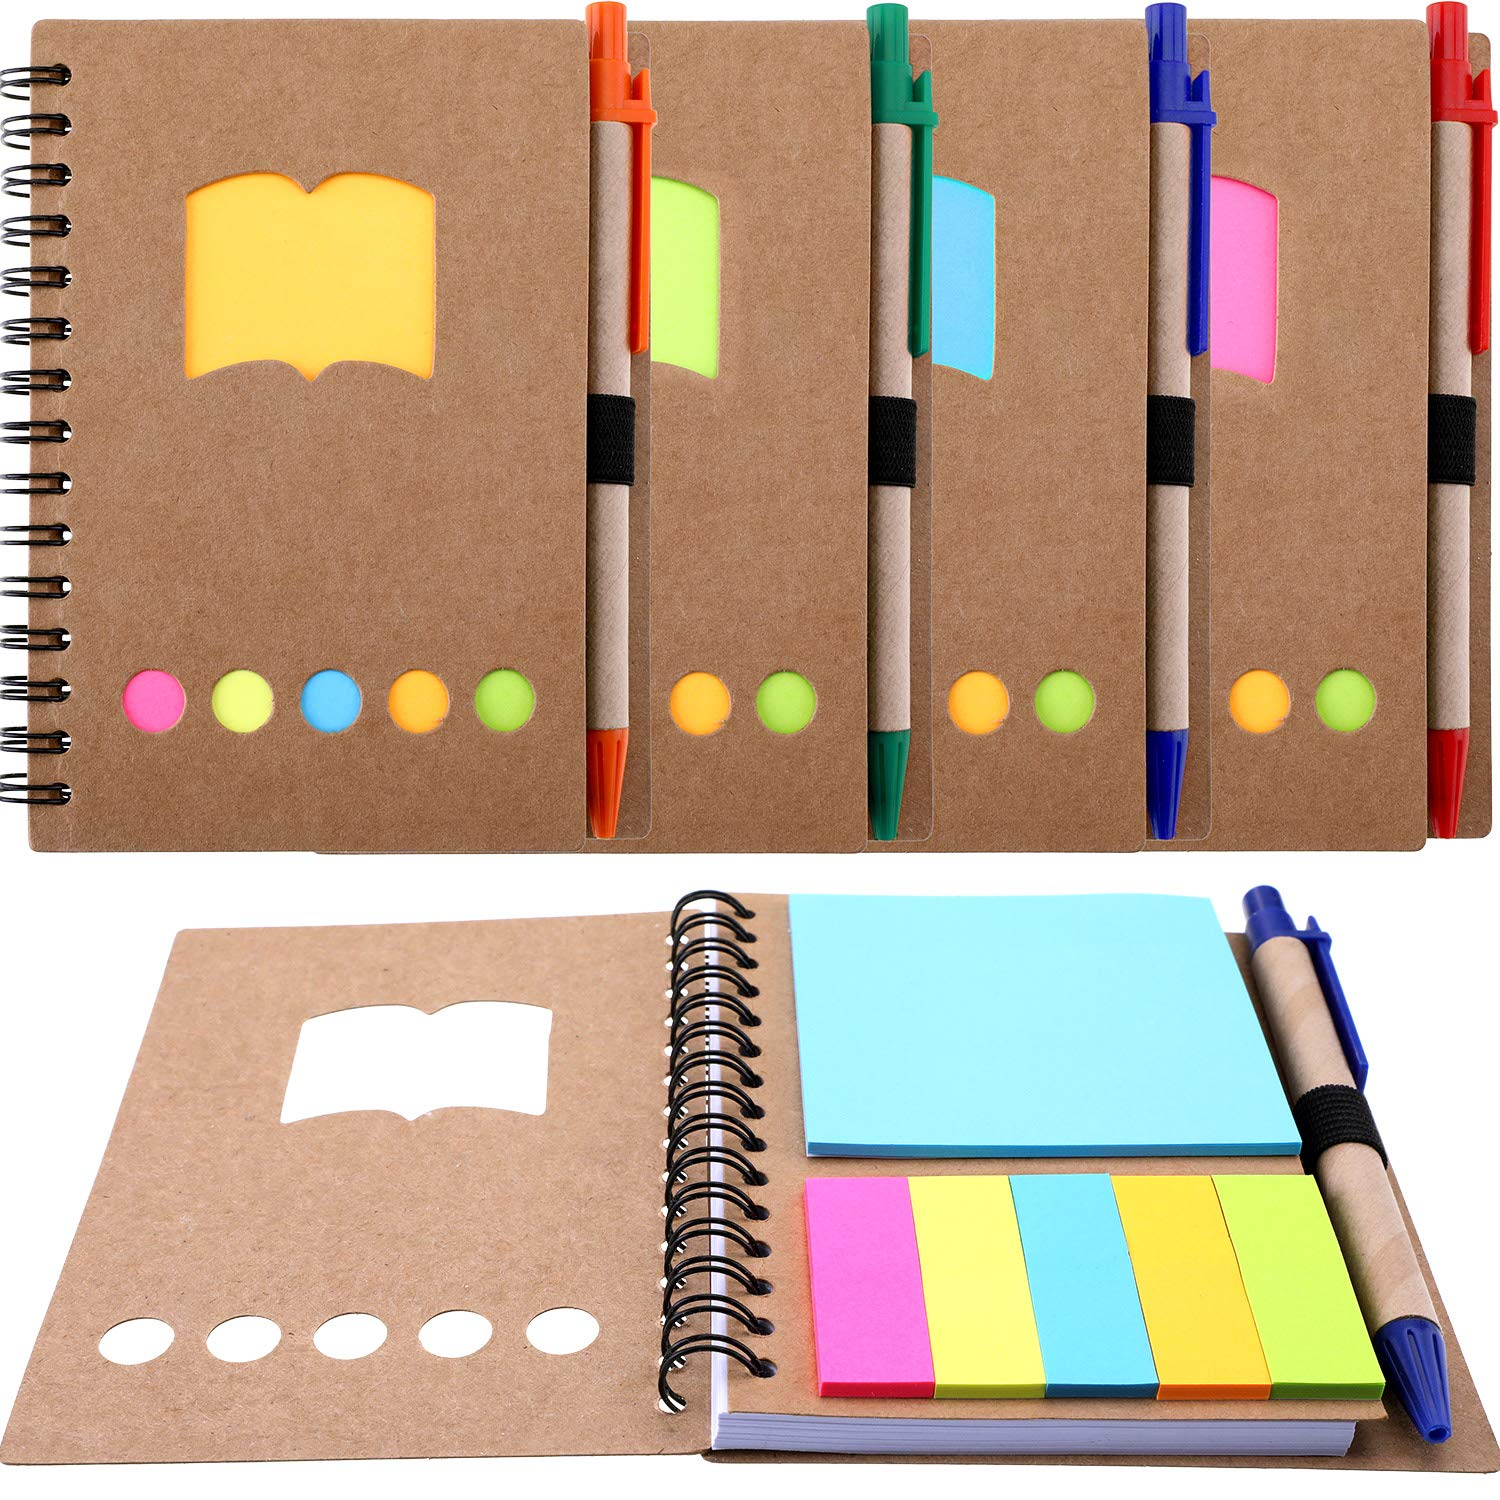 TOODOO 4 Packs Spiral Notebook Lined Notepad with Pen in Holder and Sticky Notes, Page Marker Colored Index Tabs Flags (Brown Cover, Style 2)